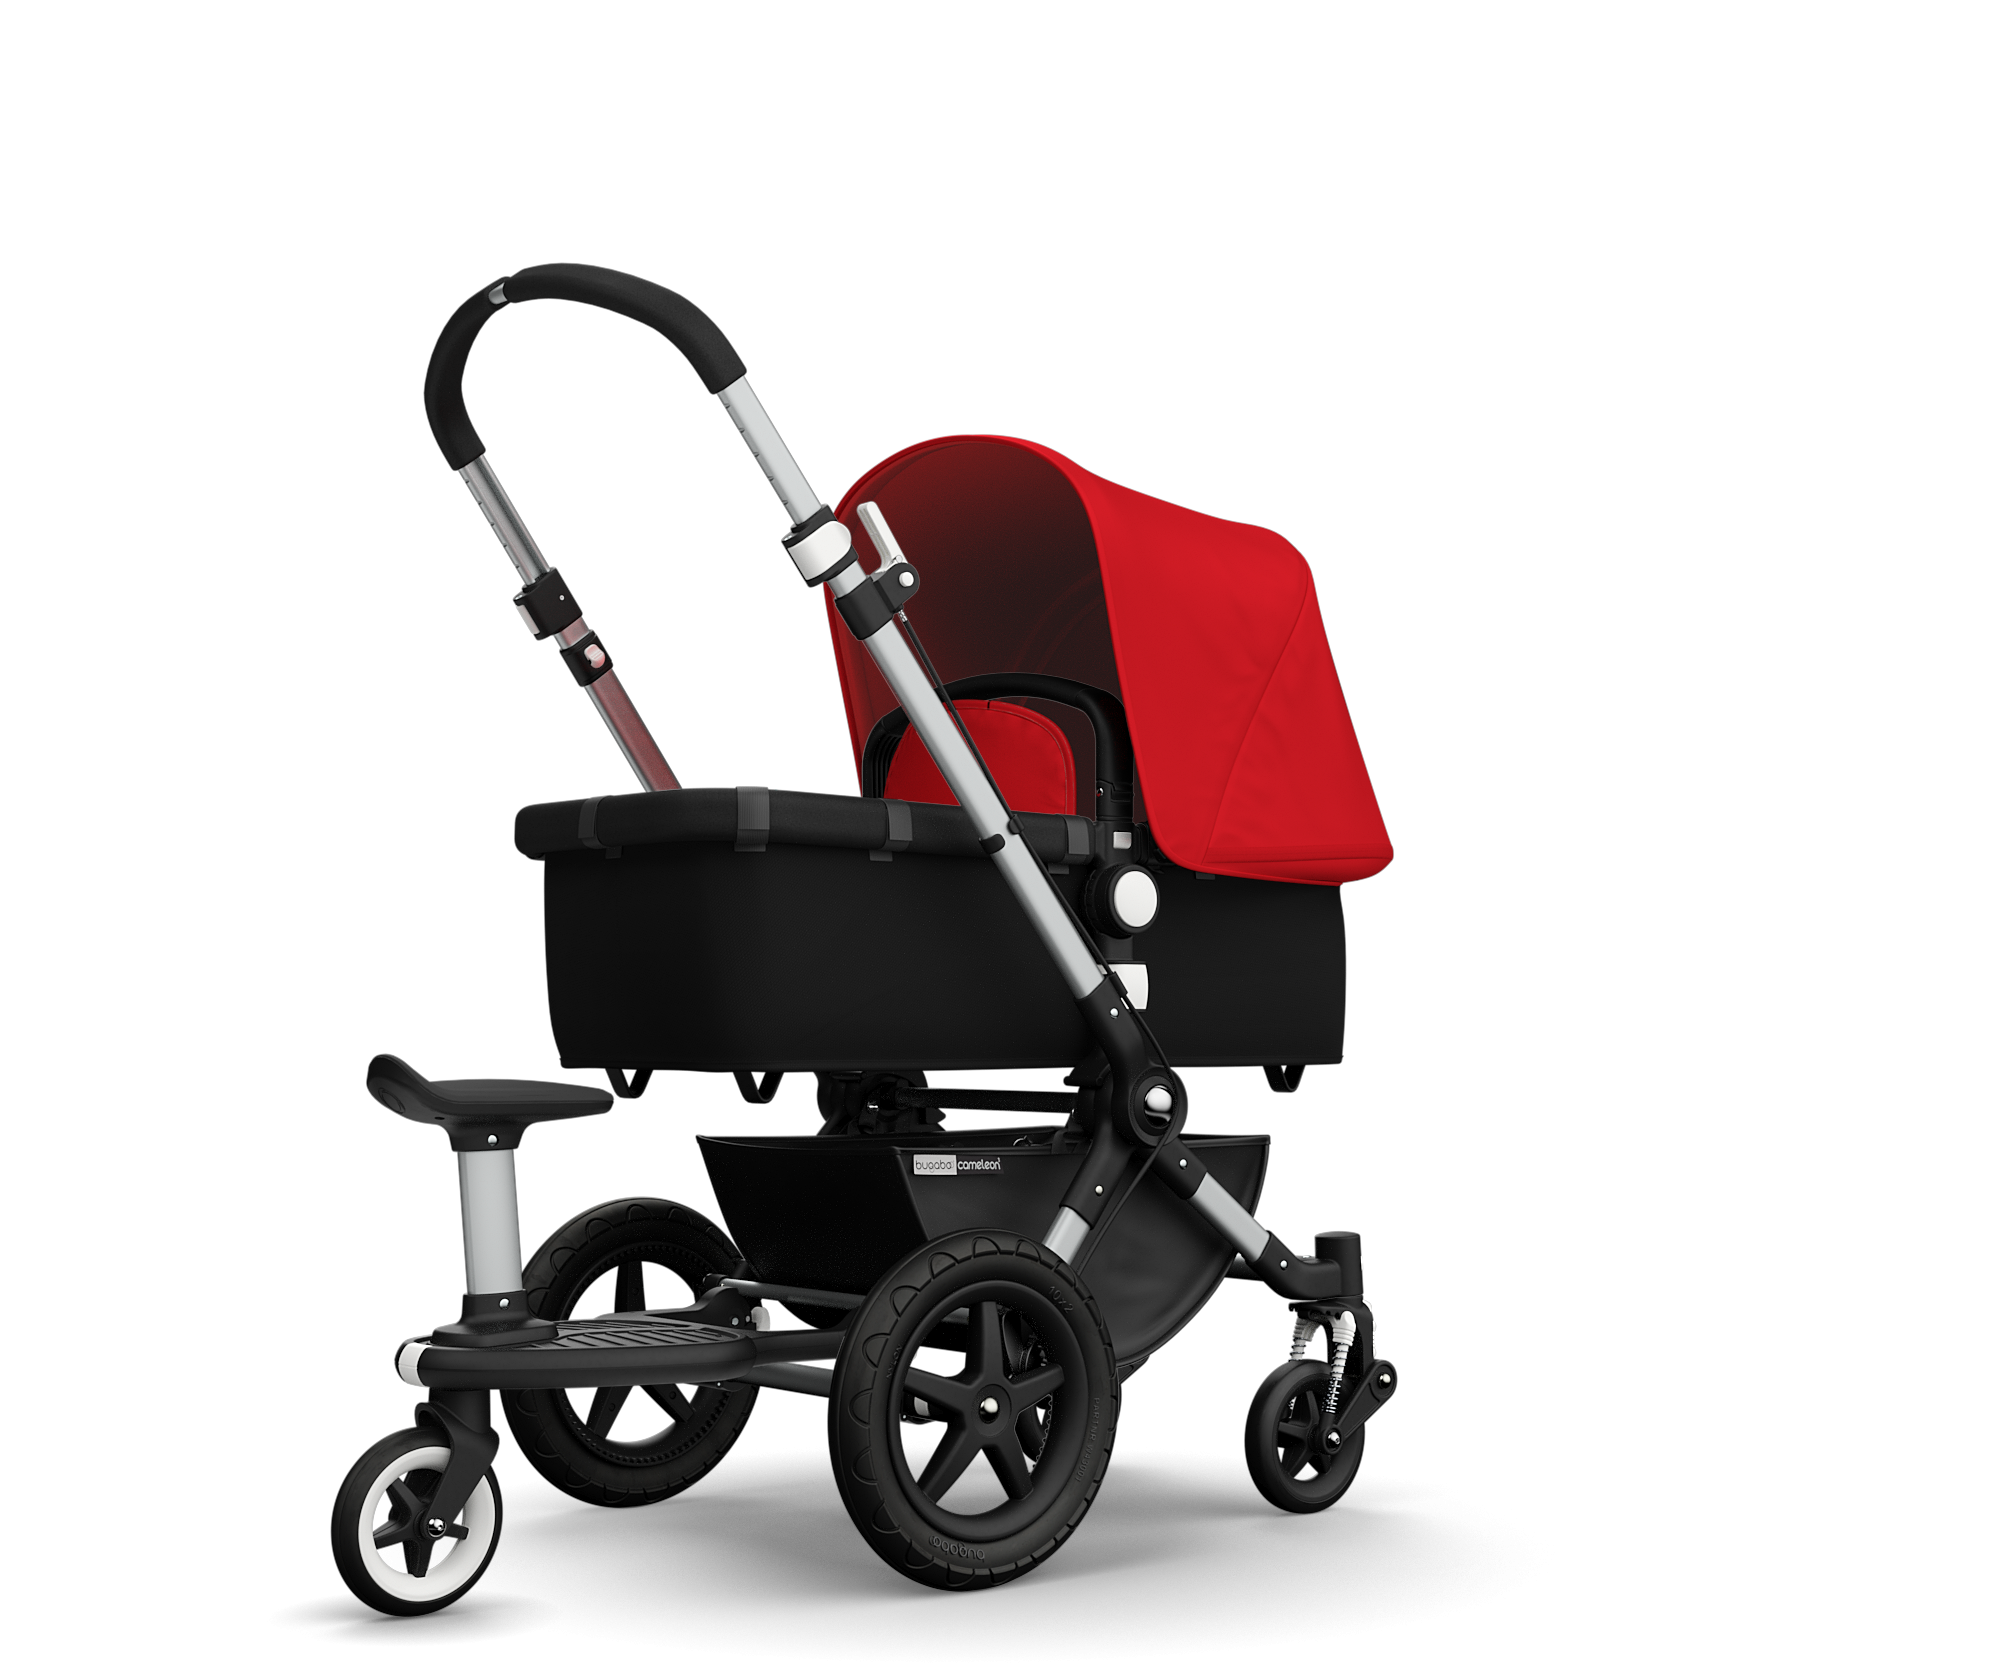 Discover more and create your own Bugaboo Cameleon³ at